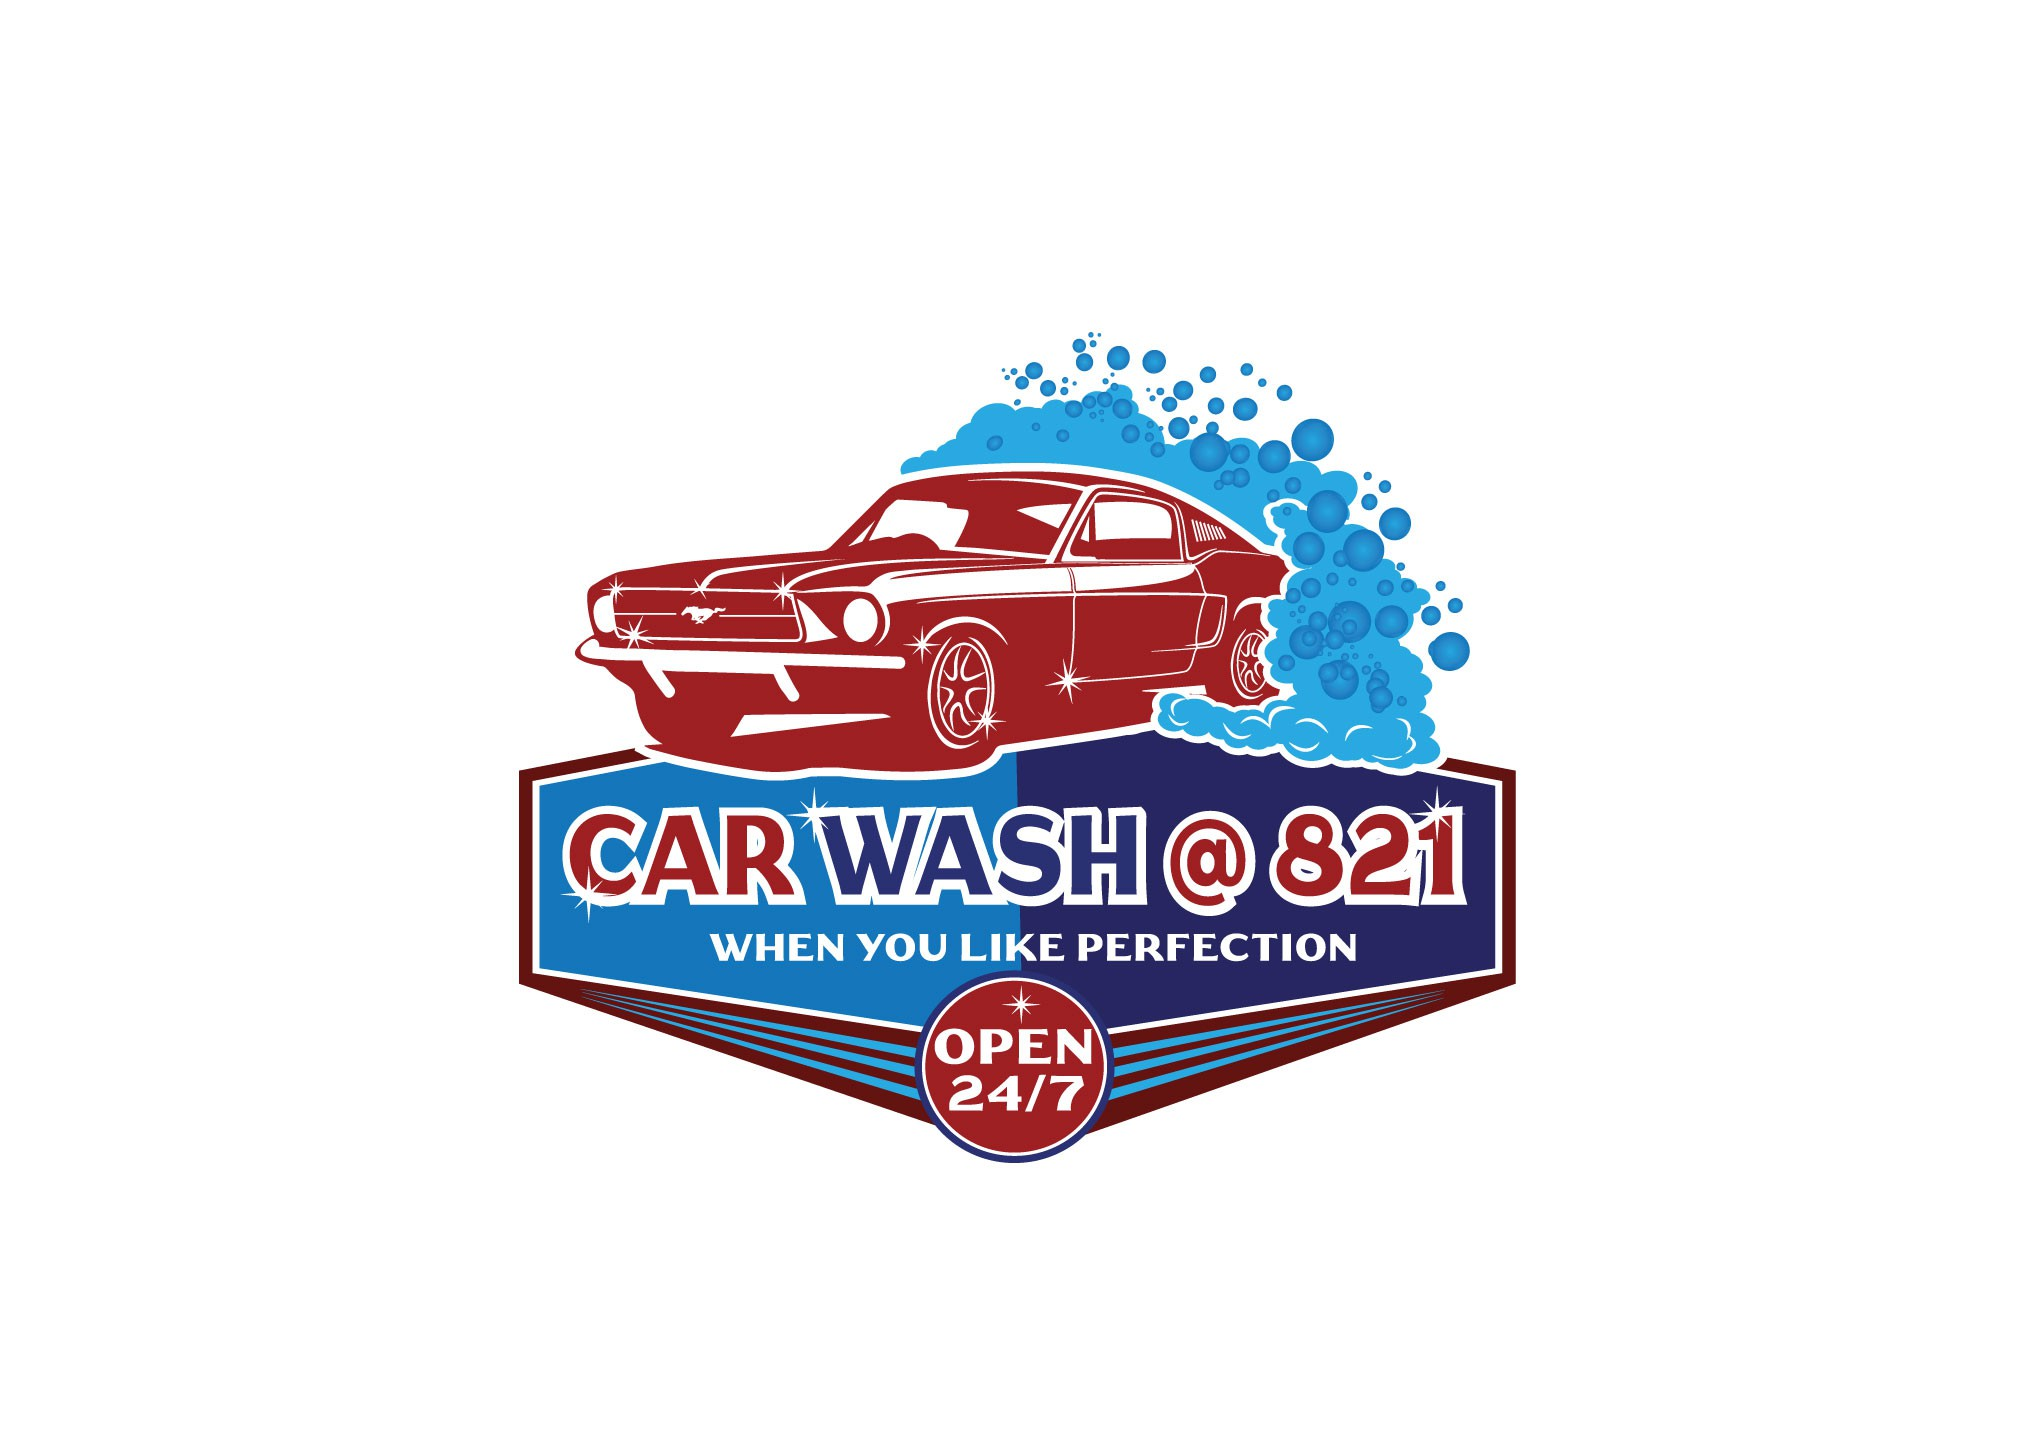 suds/bubbles, ford mustang, fast, sparkling, energizing,